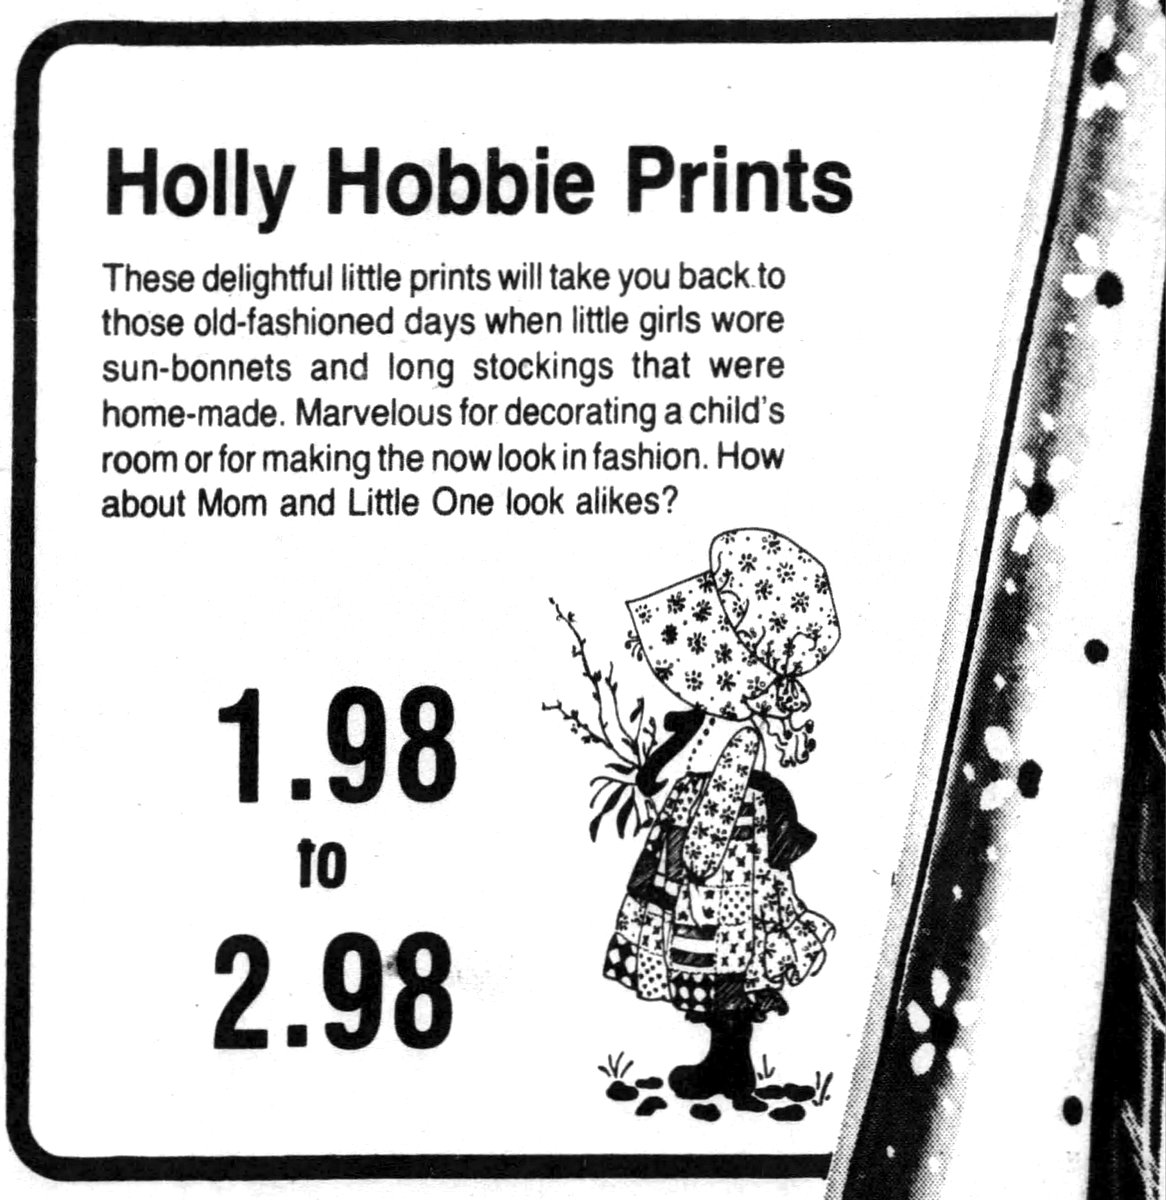 Holly Hobbie prints (1974)